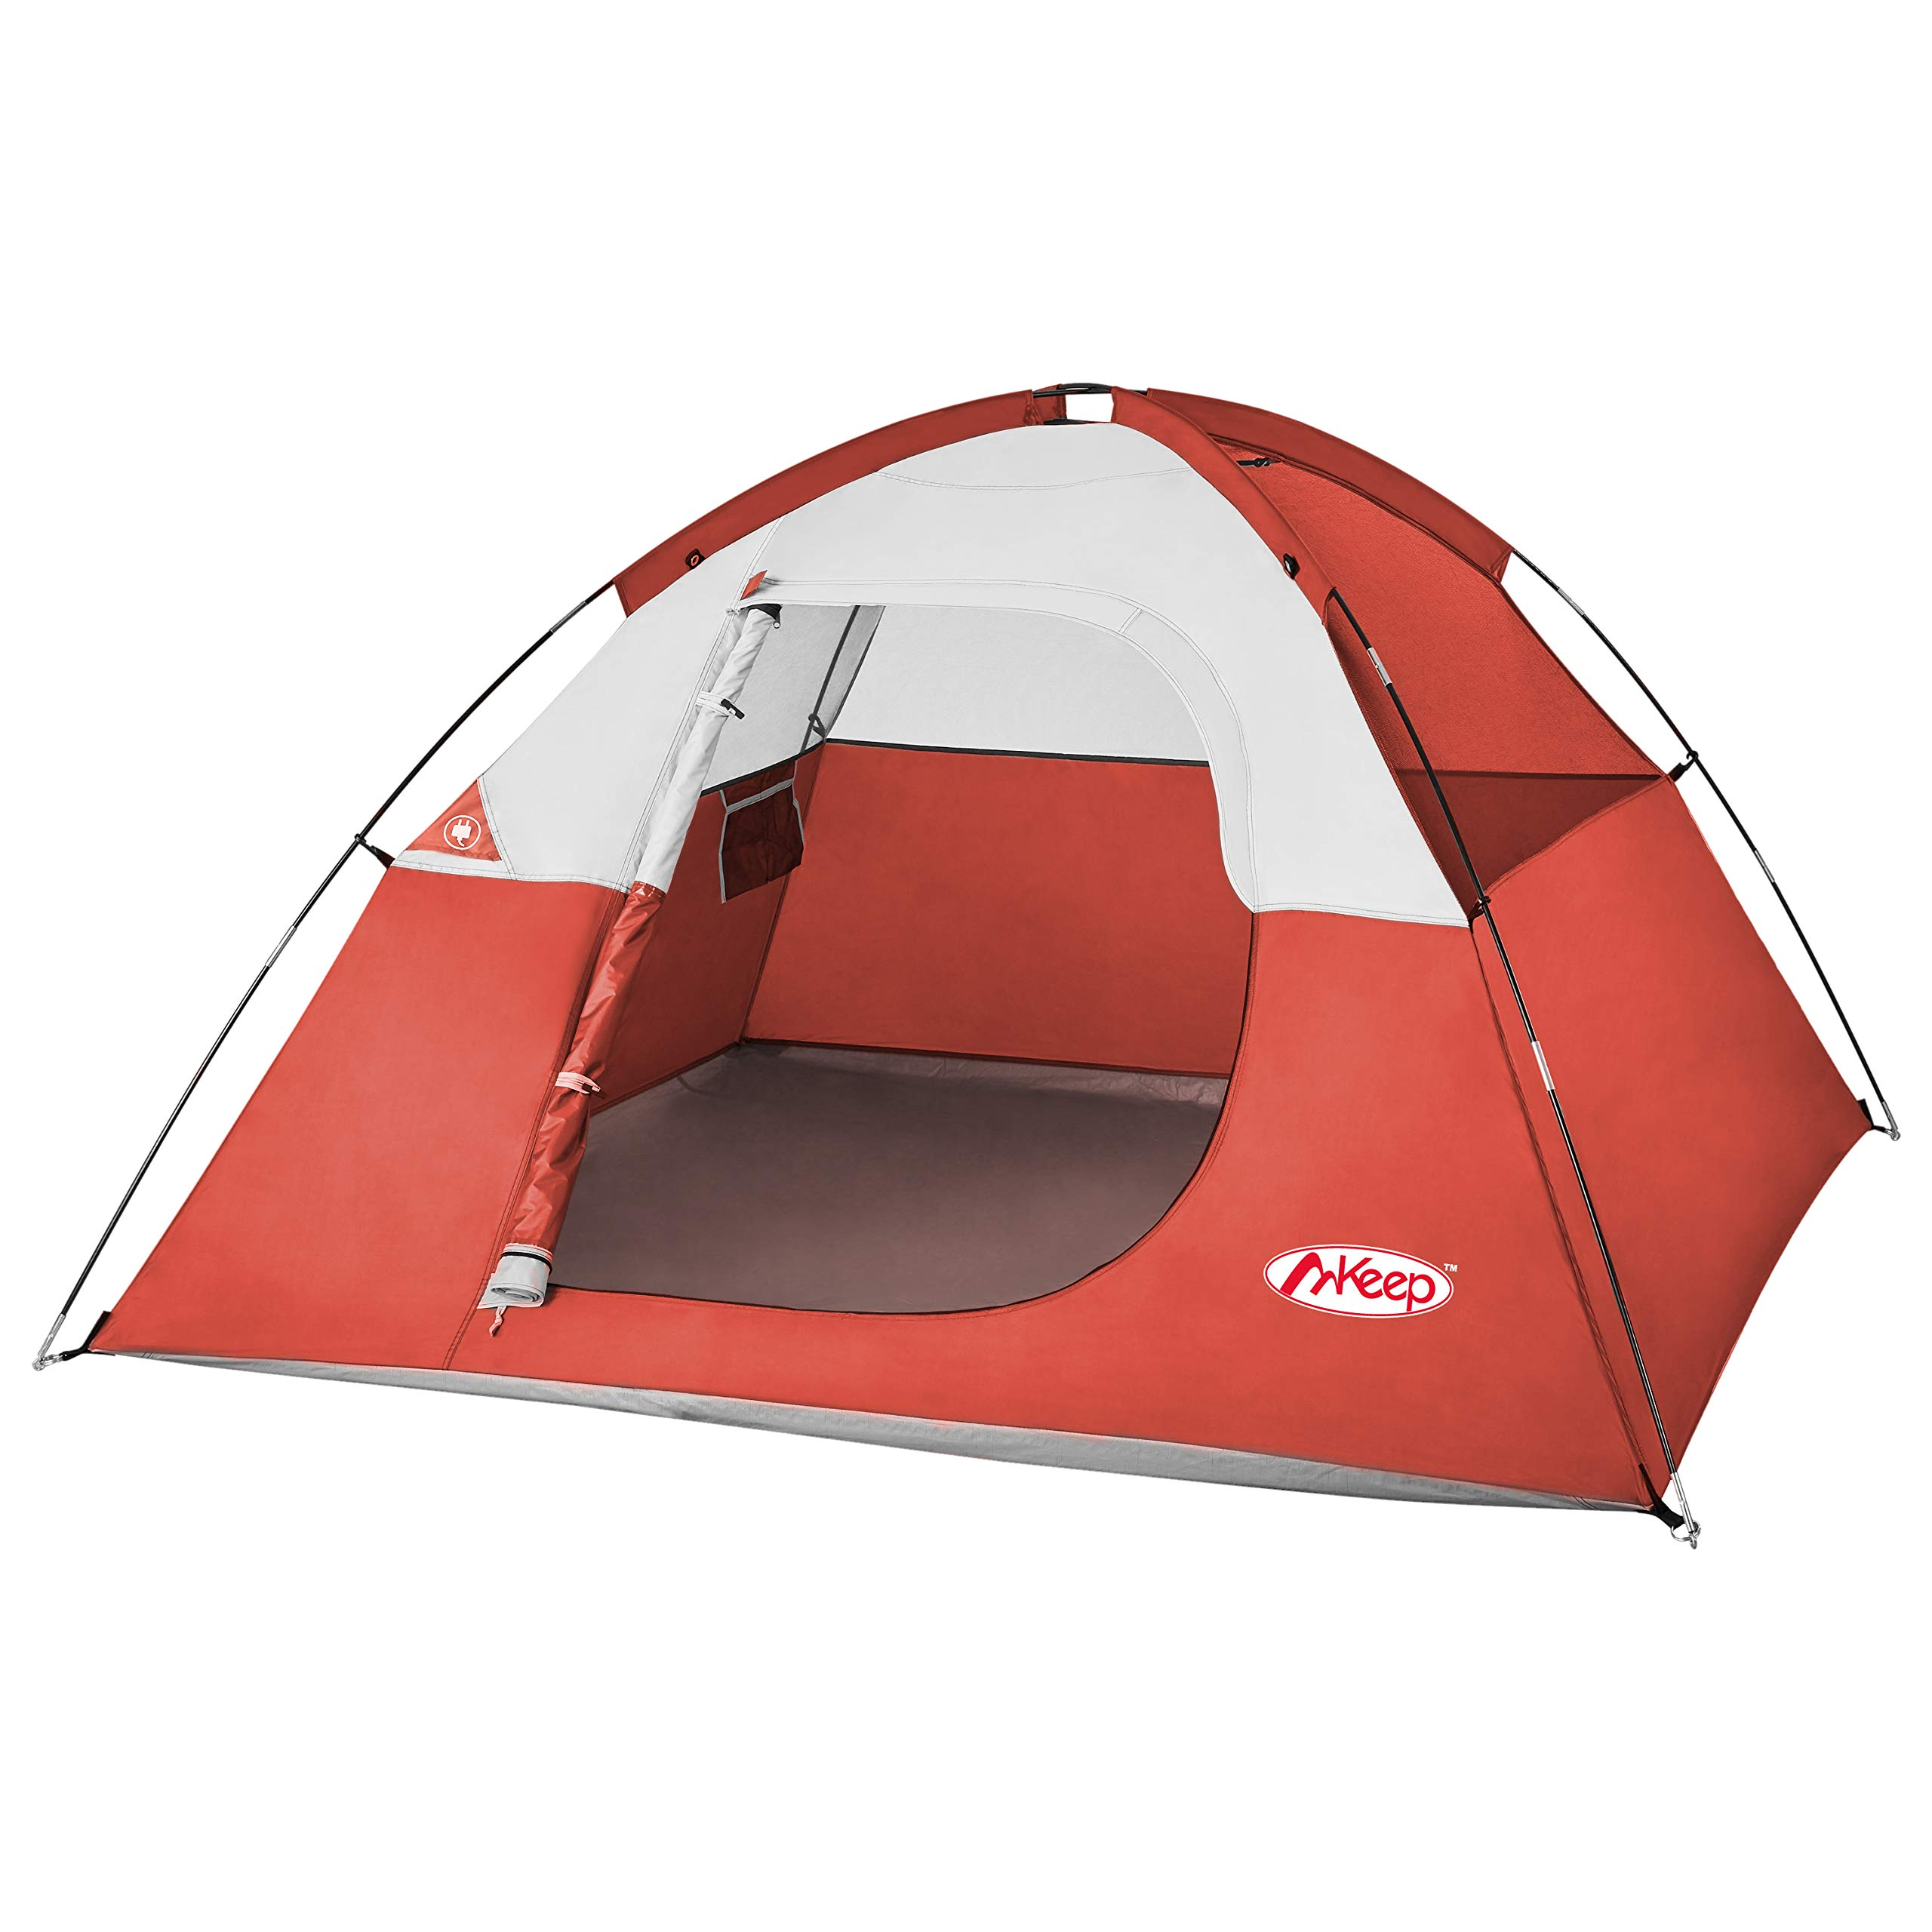 TOMOUNT 3 Person Tent - Easy & Quick Setup Camping Tent, Professional Waterproof & Windproof Fabric, 3 Large Mesh for Ventilation, Double Layer, Anti-UV, Lightweight & Portable with Carry Bag (3-red) by TOMOUNT